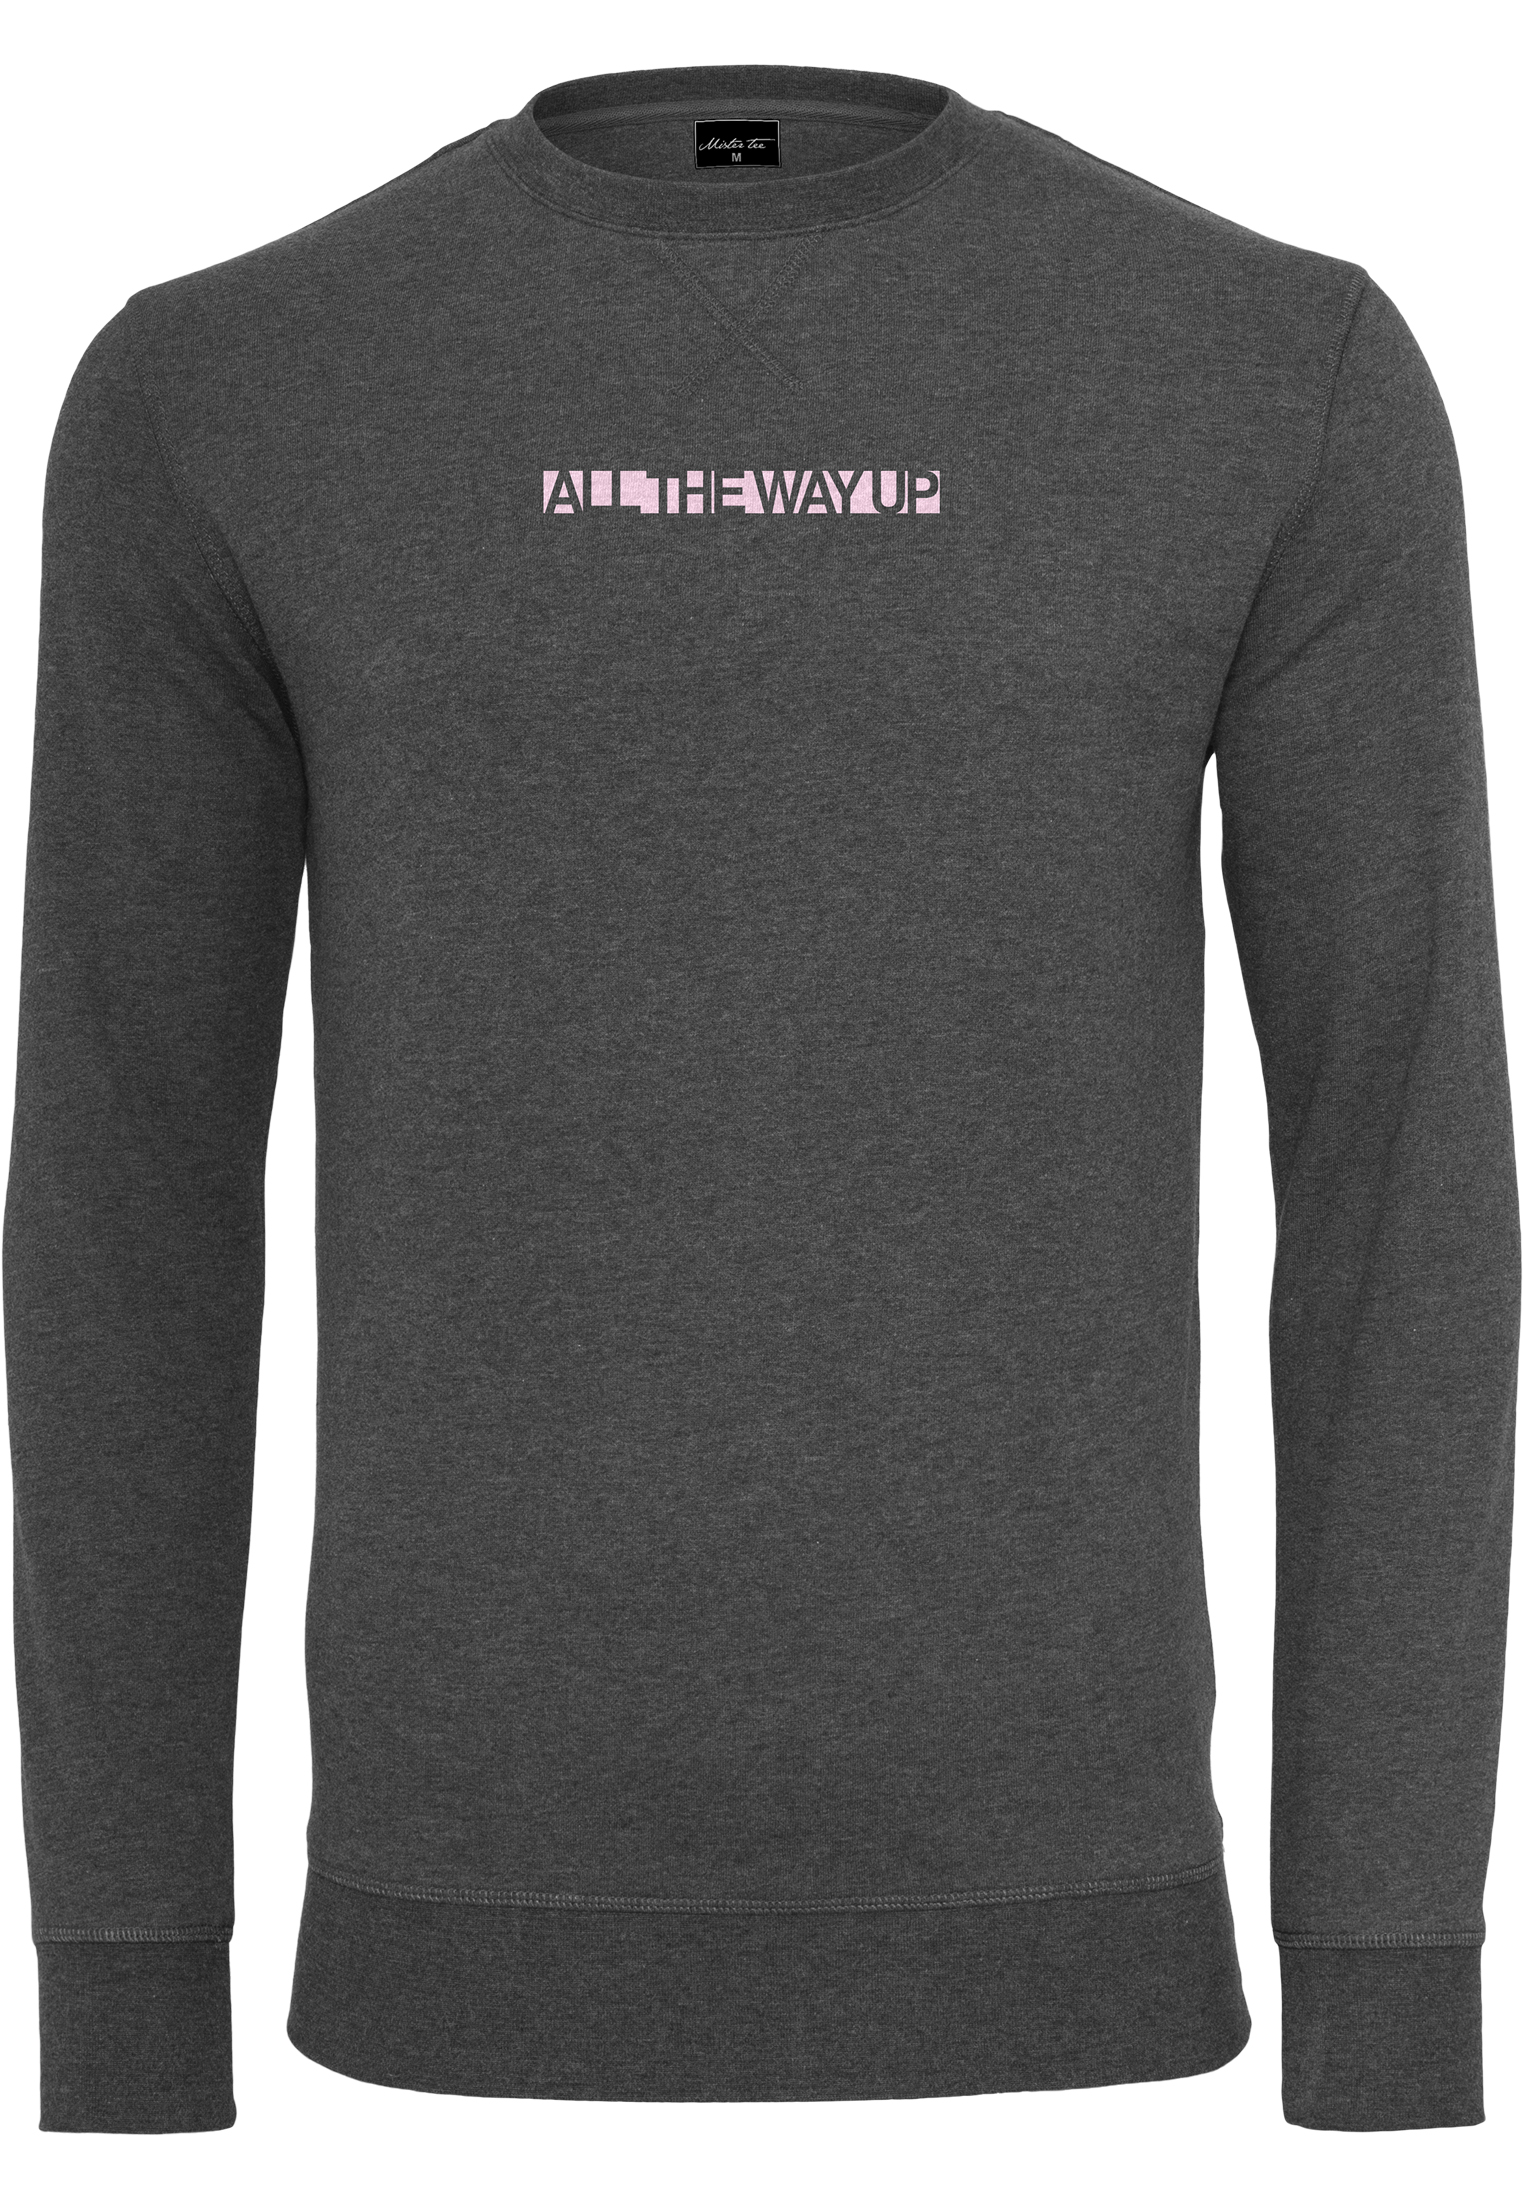 Crewneck Mister Tee All The Way Up Charcoal L